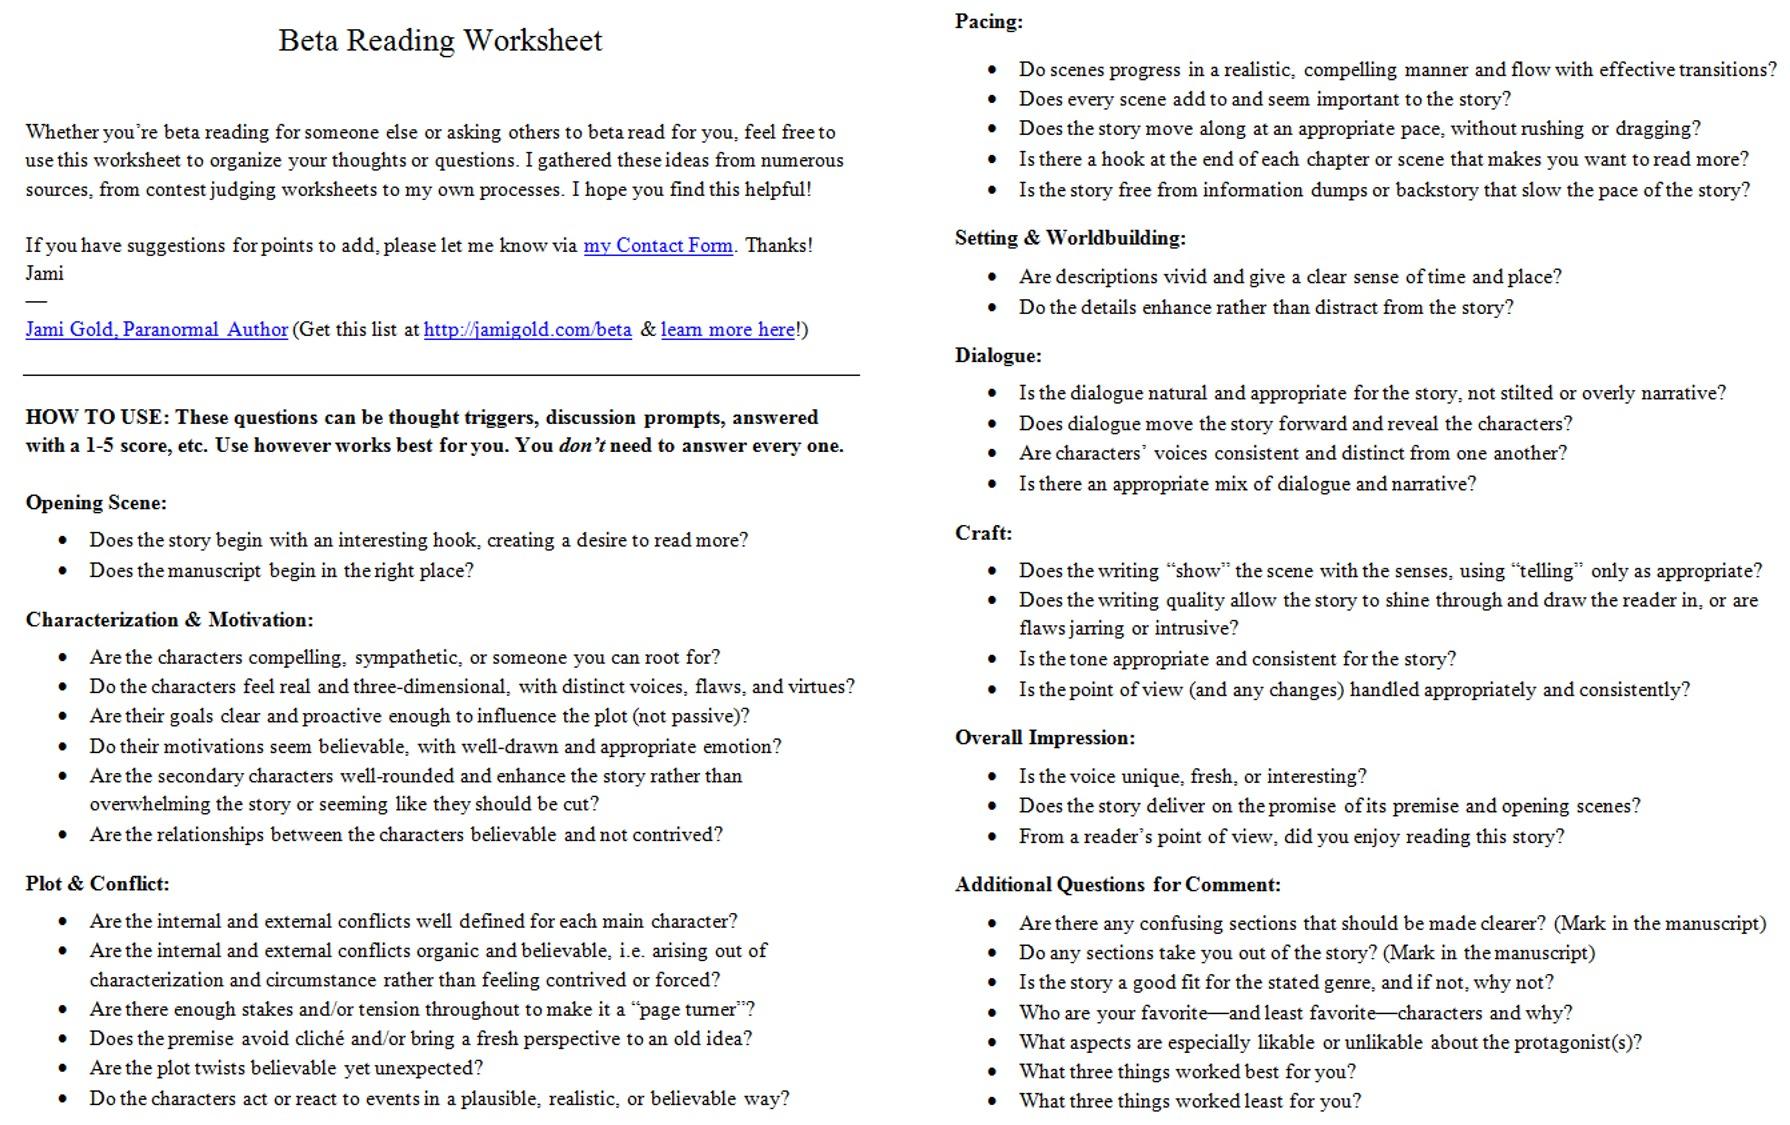 Proatmealus  Marvellous Worksheets For Writers  Jami Gold Paranormal Author With Glamorous Screen Shot Of The Twopage Beta Reading Worksheet With Comely Calculus Worksheet Also Stoichiometry Mass Mass Problems Worksheet Answers In Addition Getting To Know The Periodic Table Worksheet Answers And Improper Fractions And Mixed Numbers Worksheet As Well As Pre K Number Worksheets Additionally High School Economics Worksheets From Jamigoldcom With Proatmealus  Glamorous Worksheets For Writers  Jami Gold Paranormal Author With Comely Screen Shot Of The Twopage Beta Reading Worksheet And Marvellous Calculus Worksheet Also Stoichiometry Mass Mass Problems Worksheet Answers In Addition Getting To Know The Periodic Table Worksheet Answers From Jamigoldcom